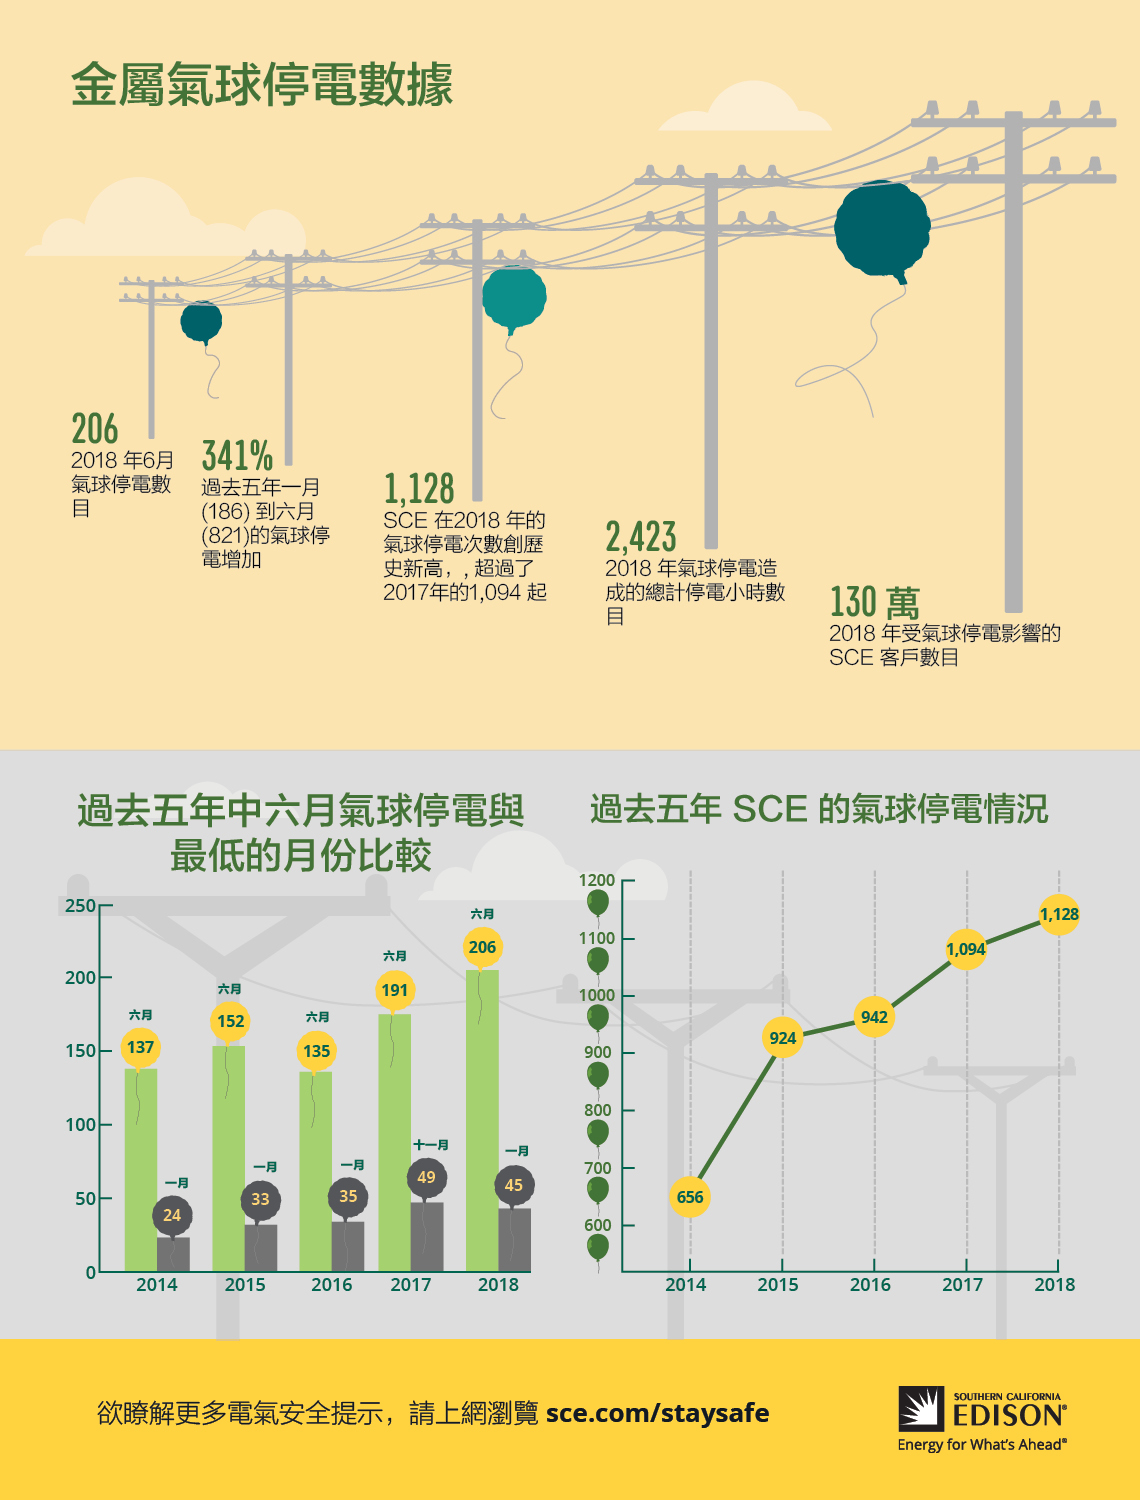 SCE Metallic Balloon Outages Infographic_CH